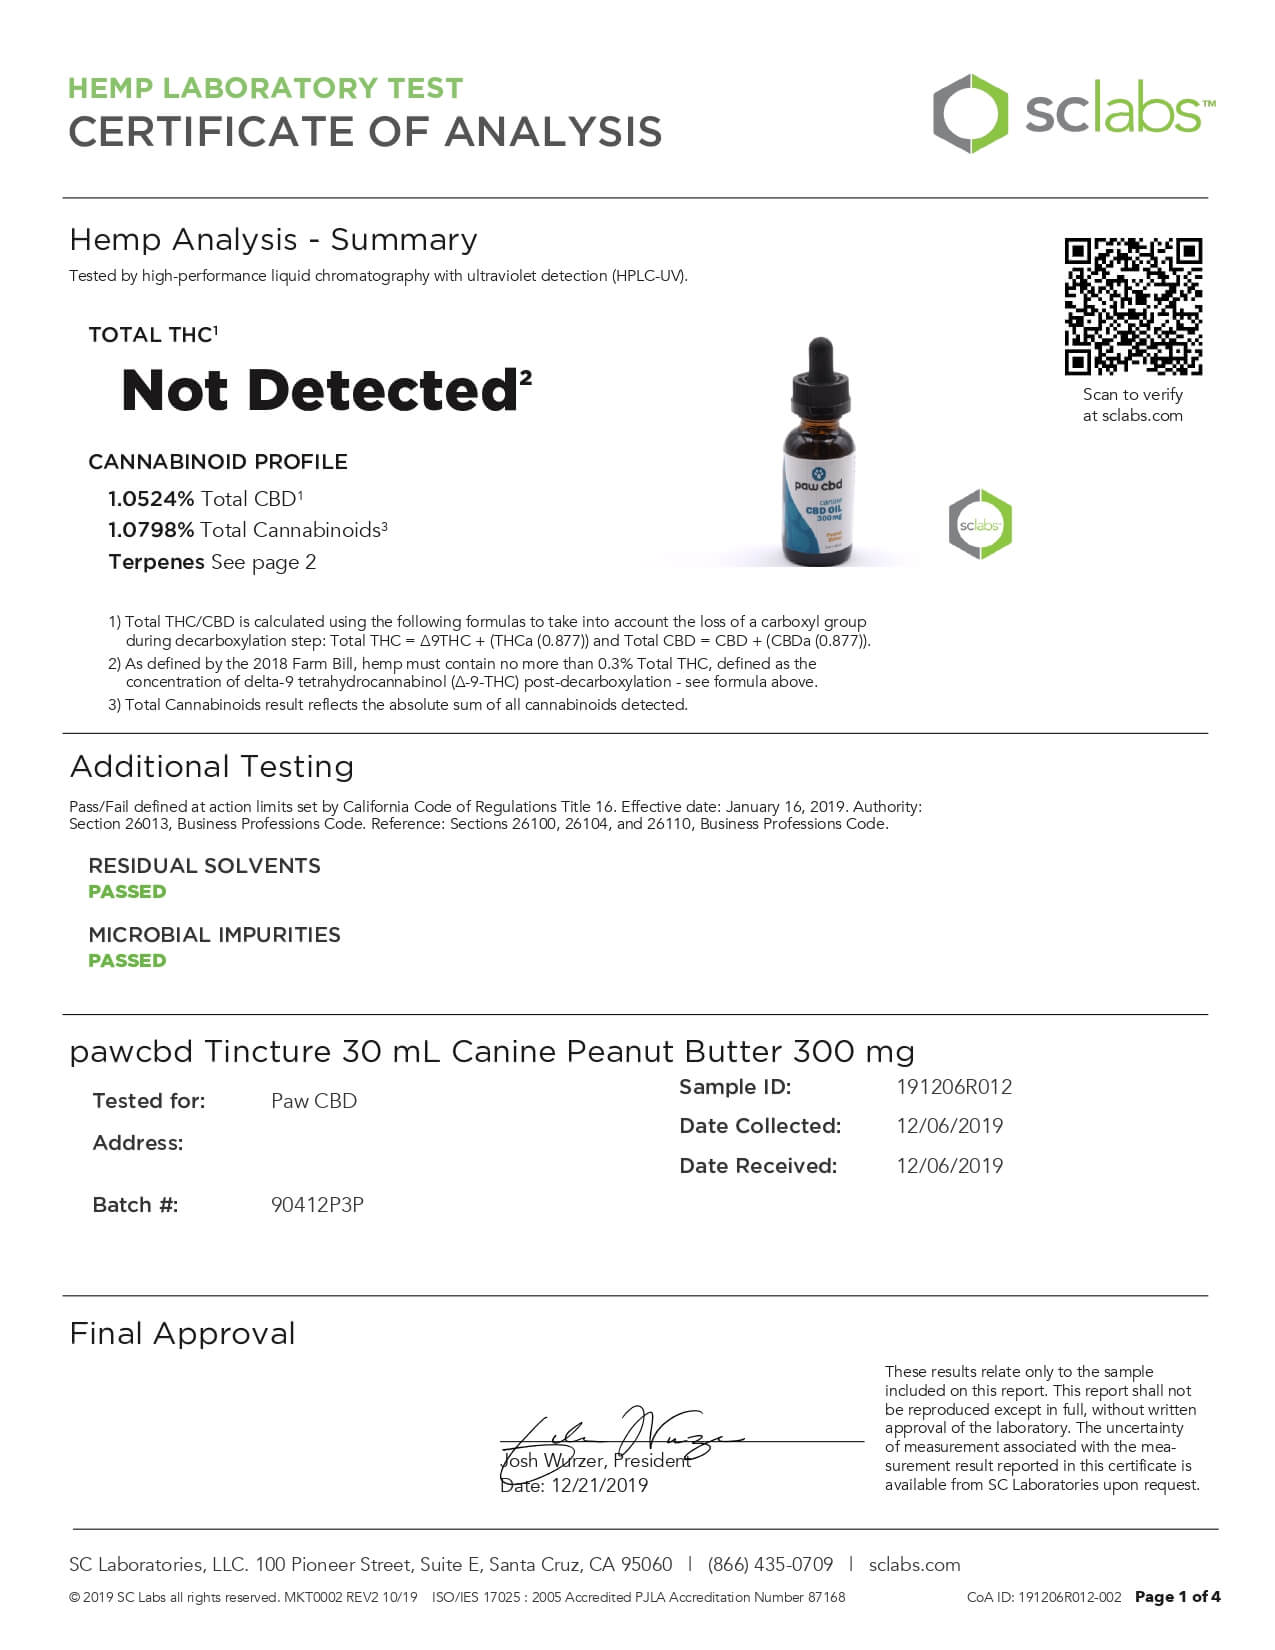 cbdMD CBD Pet Tincture Peanut Butter Flavored for Canines 300mg Lab Report